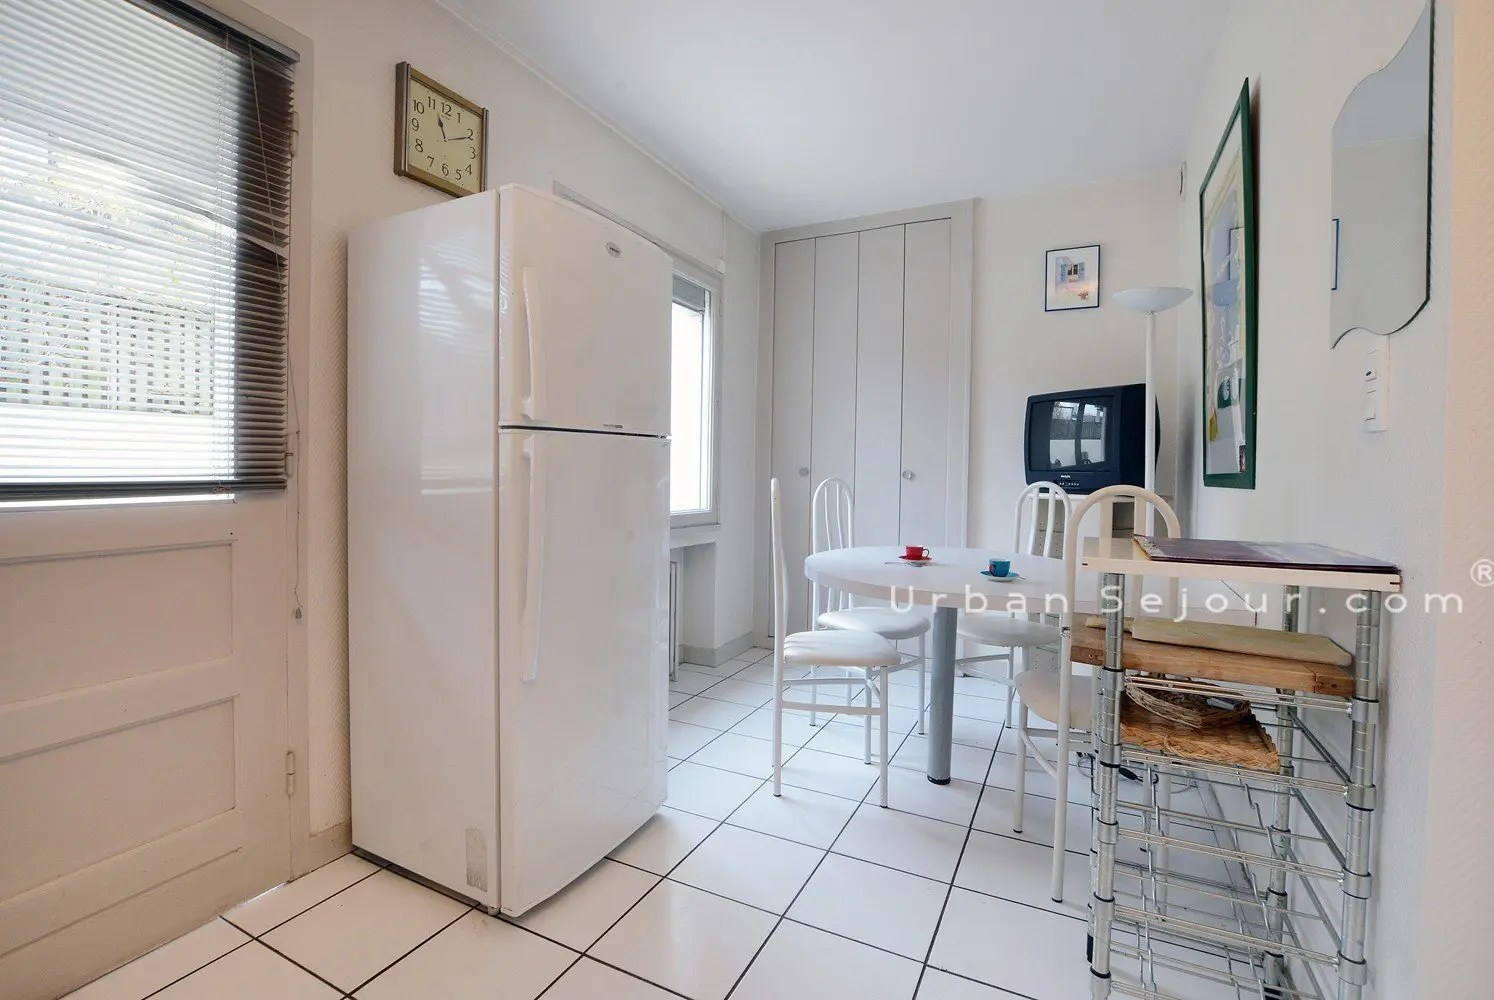 Cuisine Maison Rental A Furnished Apartment With 3 Bedrooms Seasonnal Or